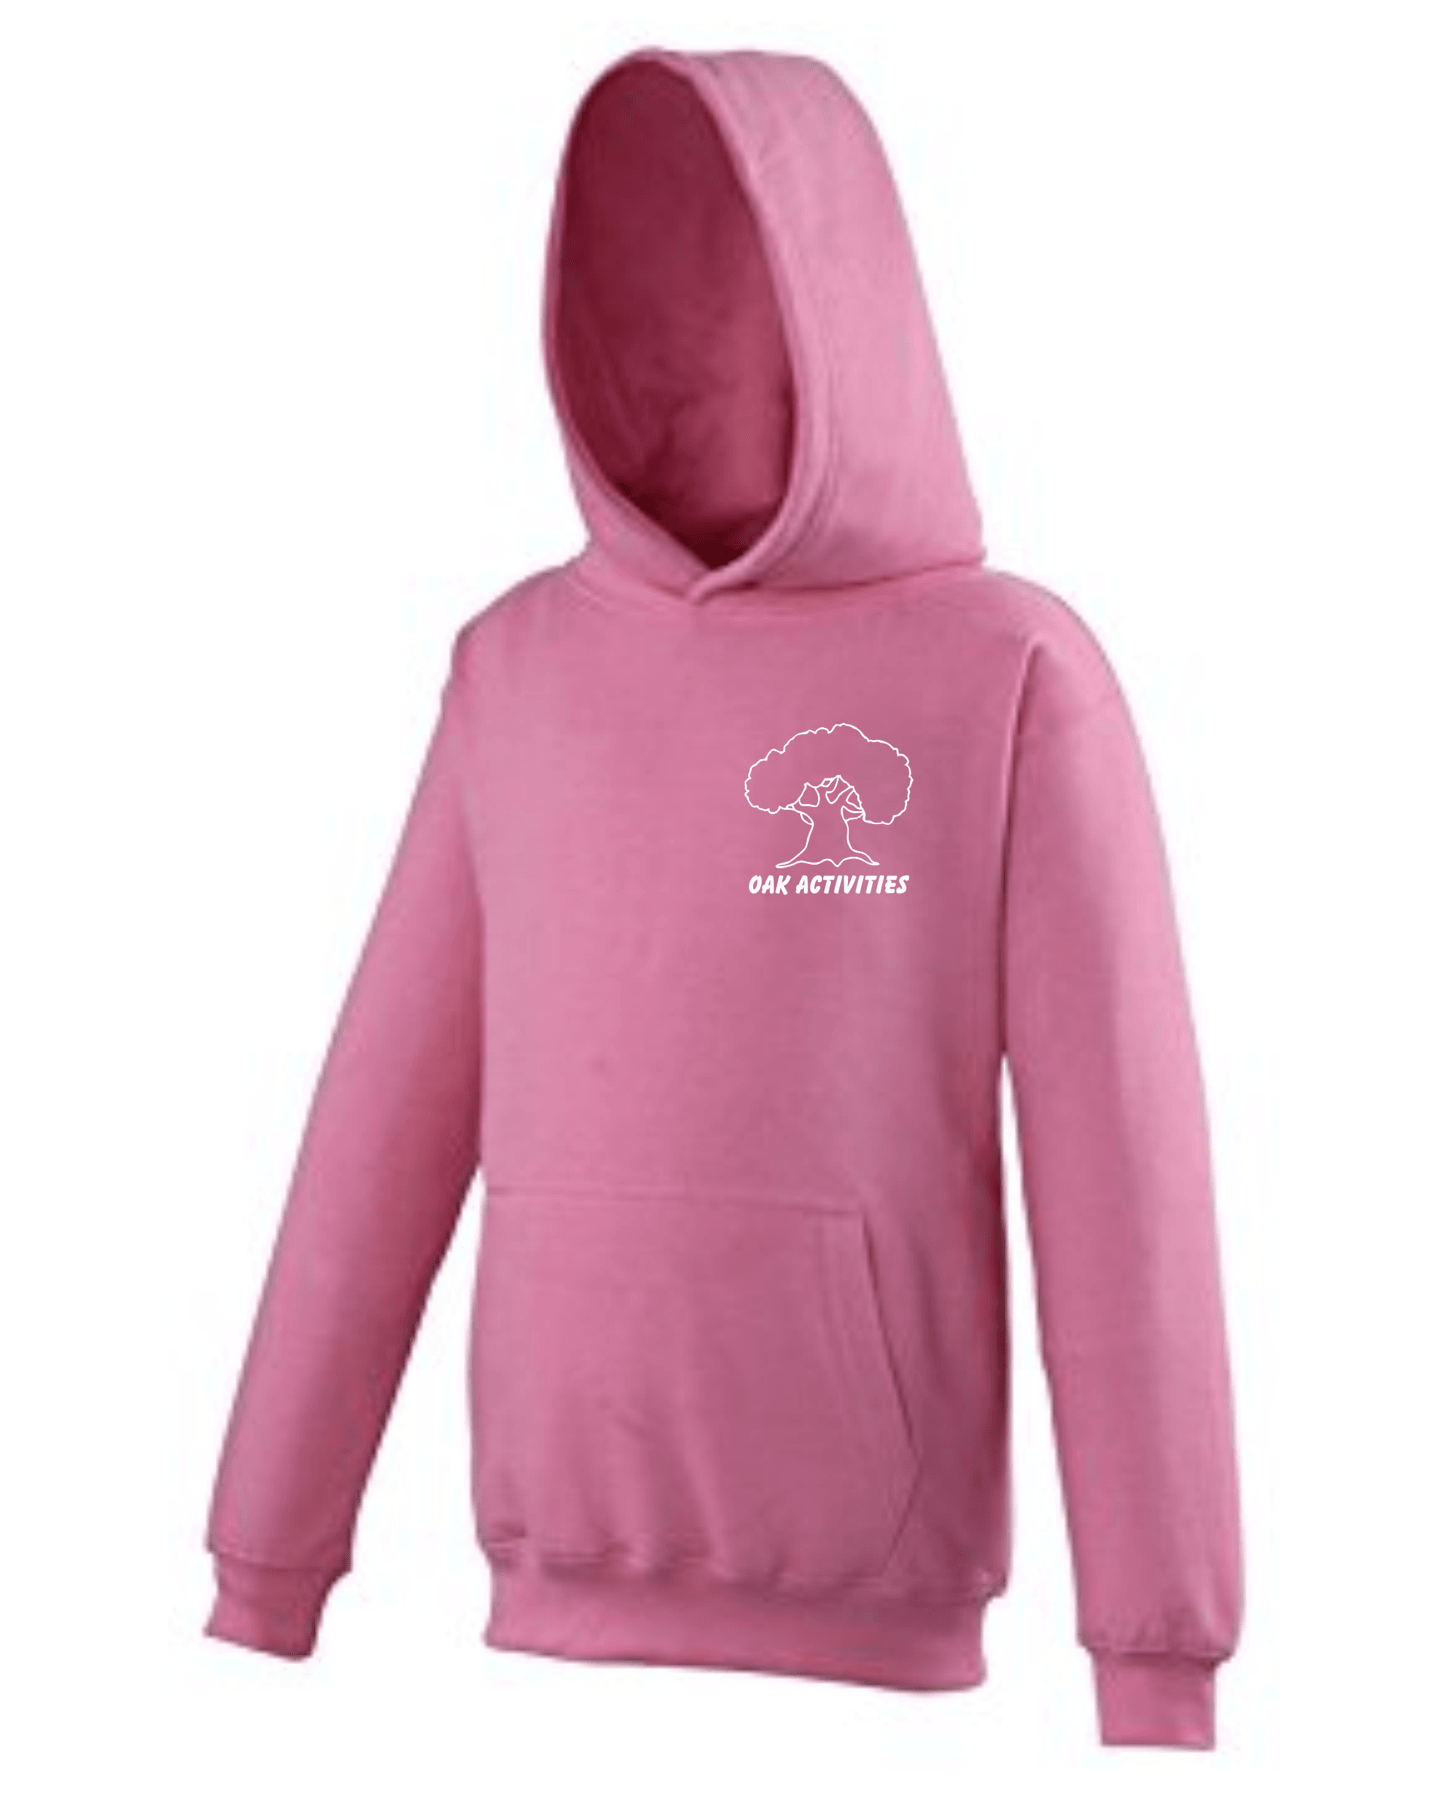 Oak Activities – Kids Hoodie (Pink)